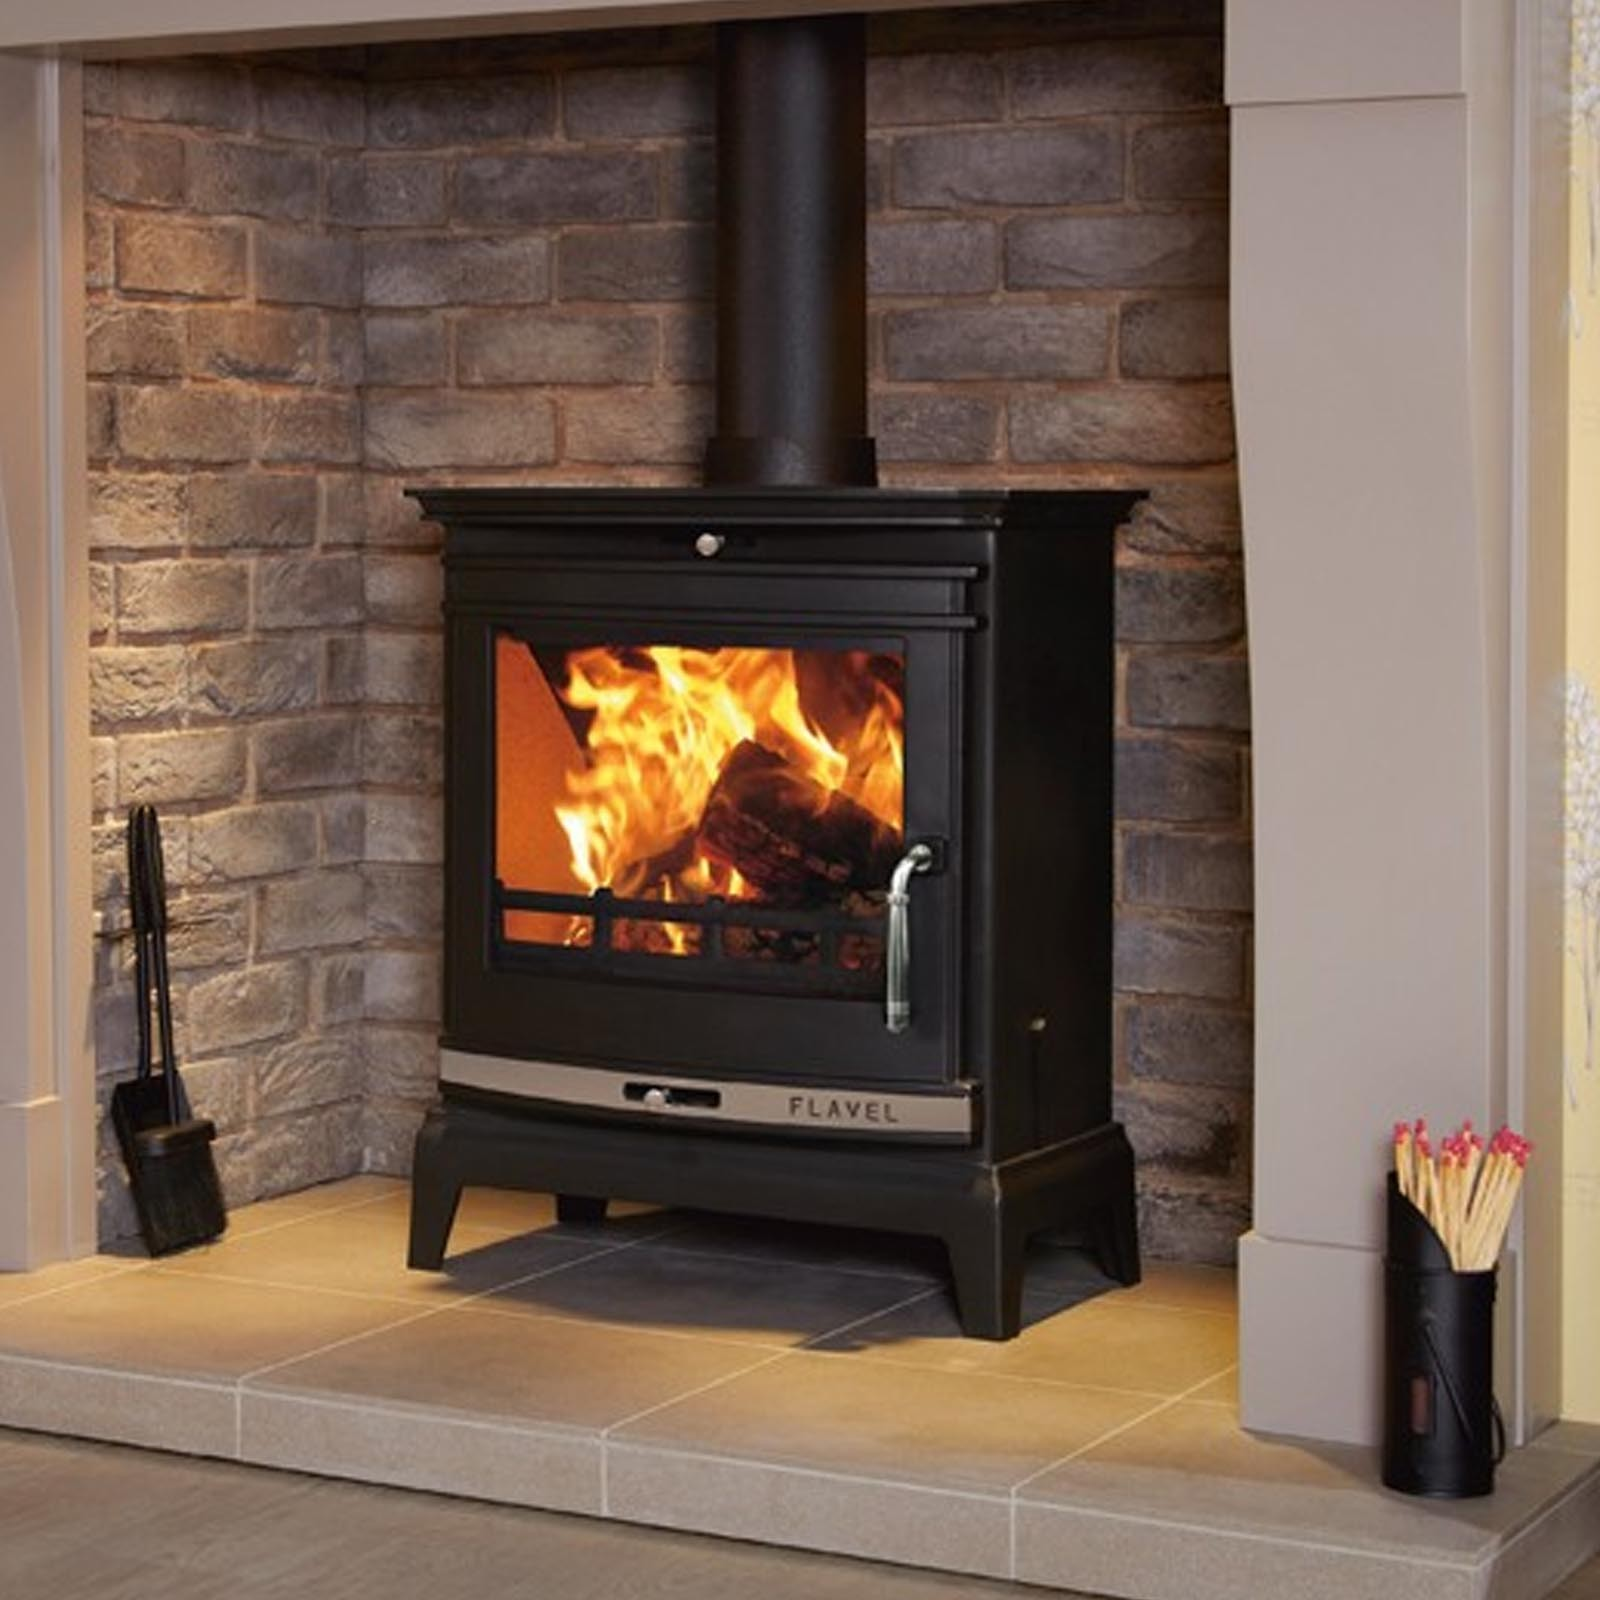 Cant Be Beaten In Price Flavel Central Heating Stove